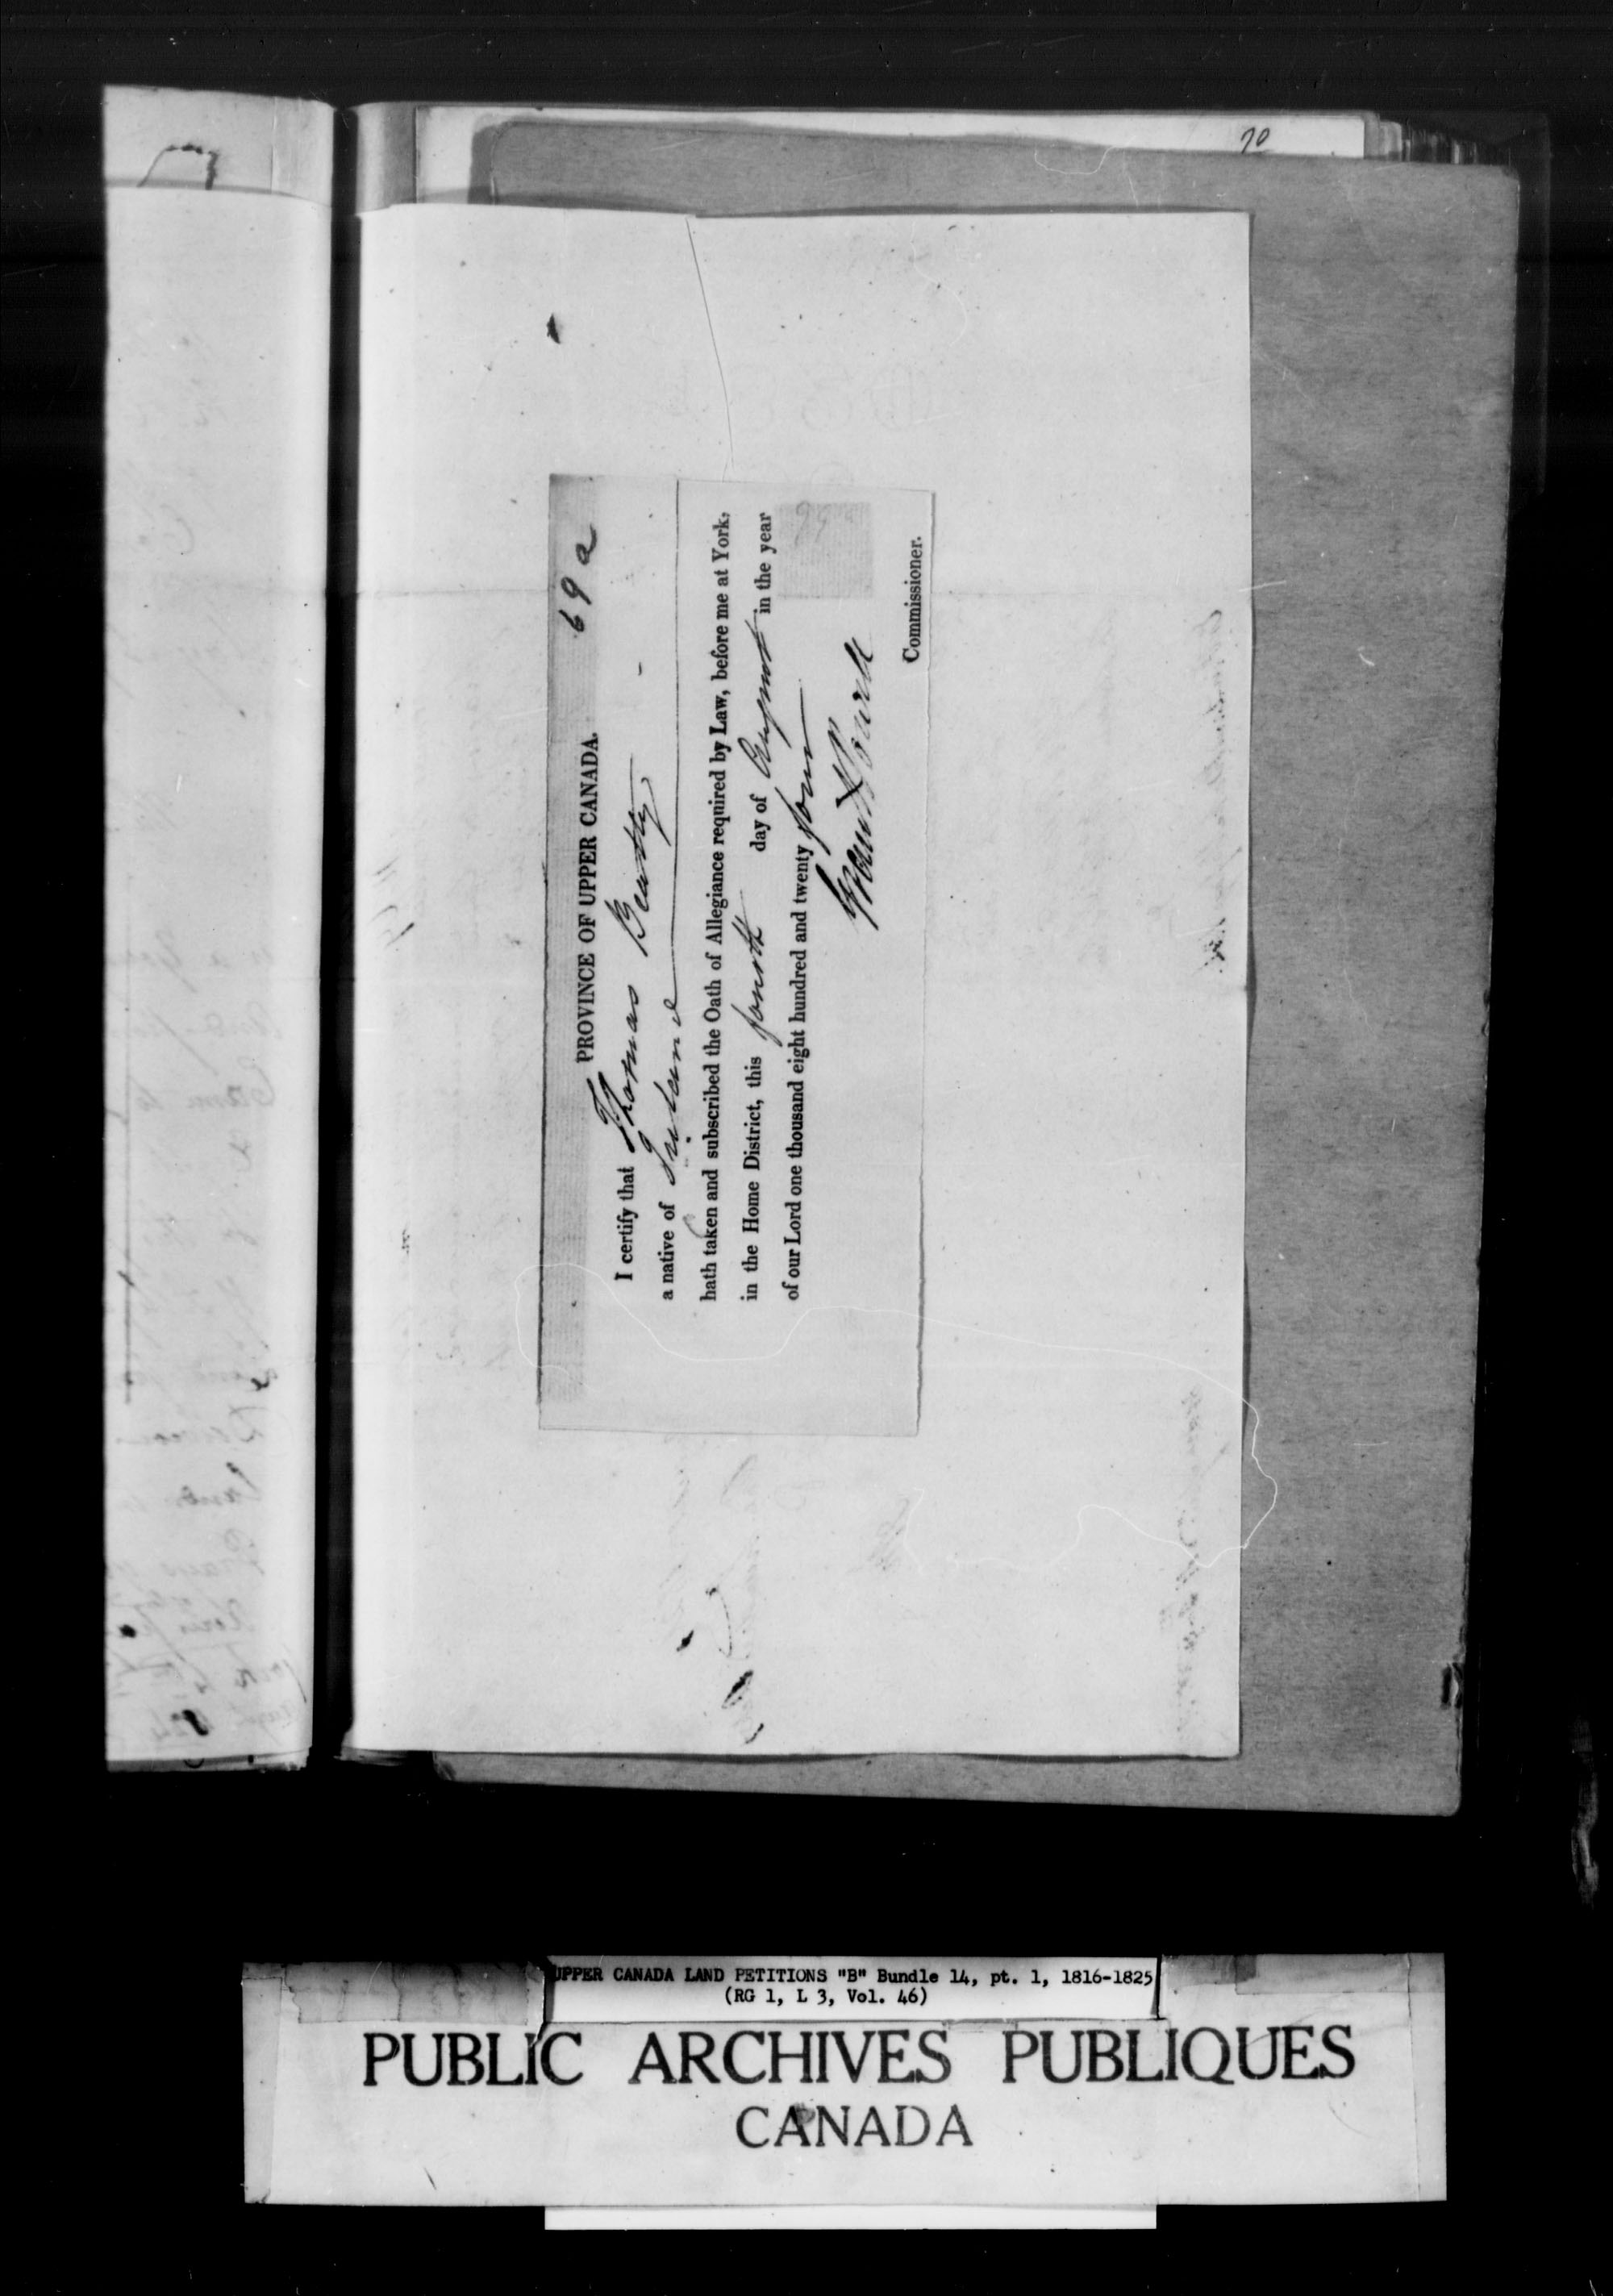 Title: Upper Canada Land Petitions (1763-1865) - Mikan Number: 205131 - Microform: c-1627